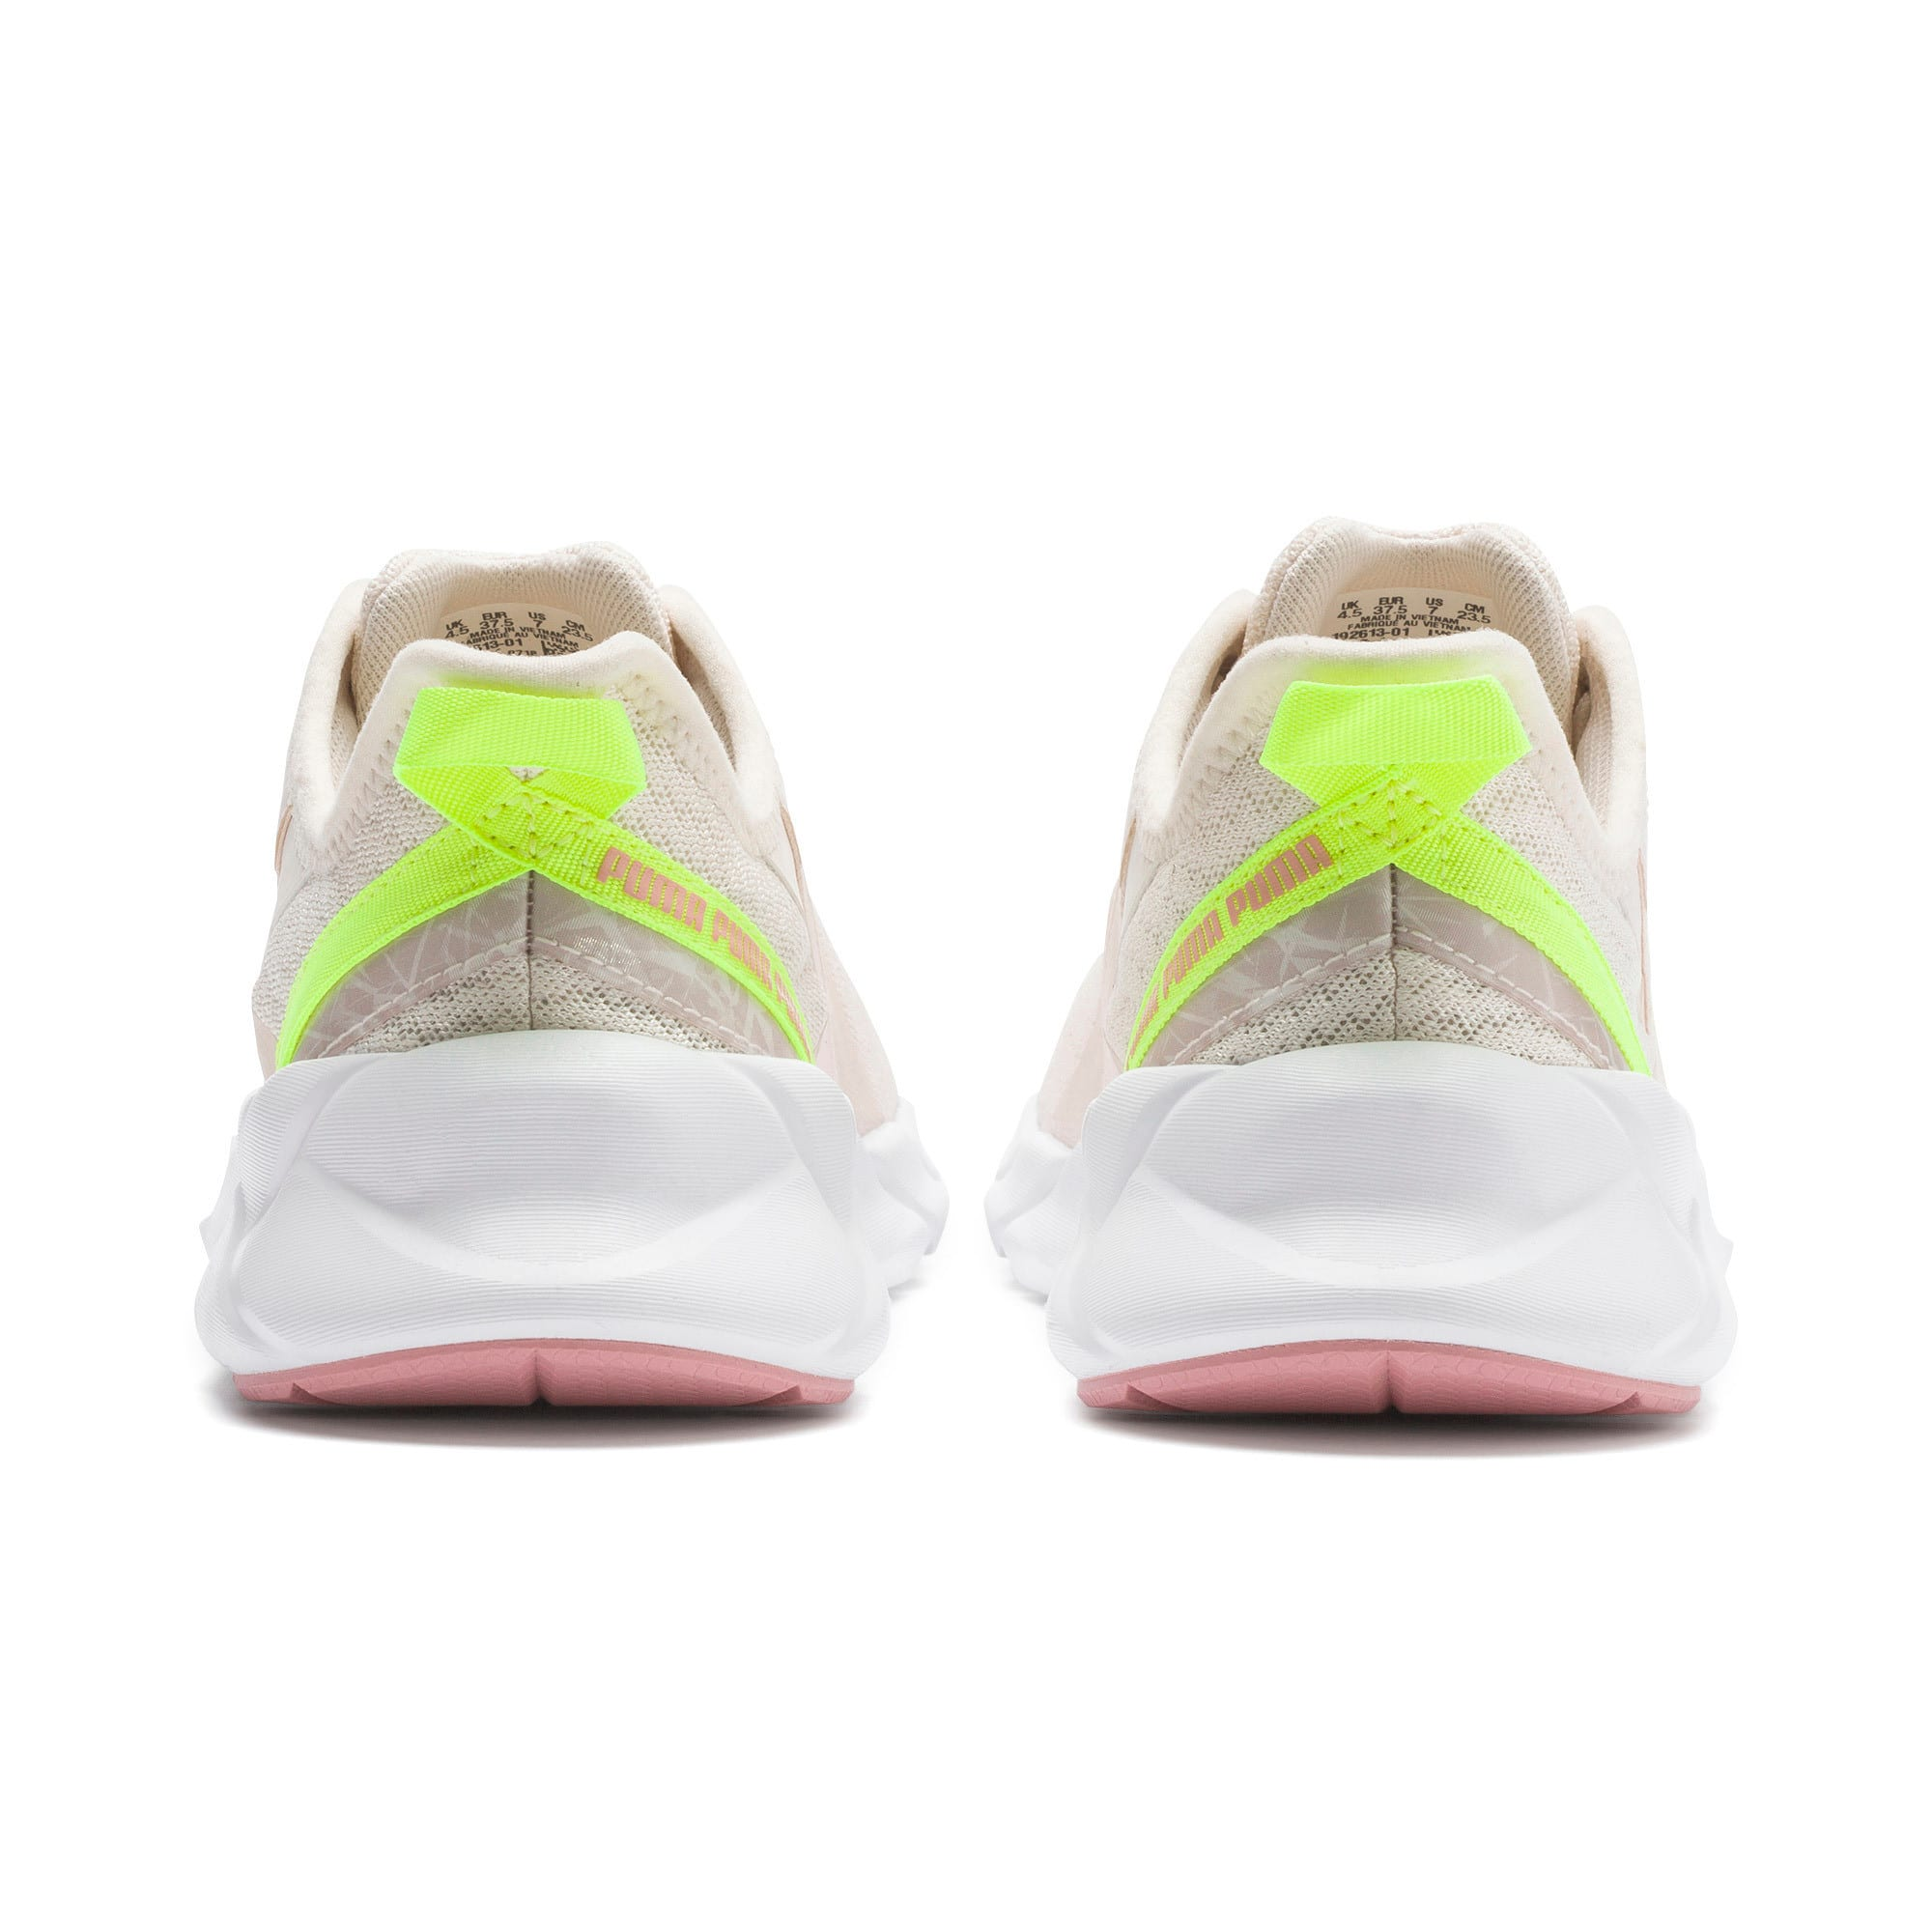 Thumbnail 4 of Weave XT Shift Women's Training Shoes, Pastel Parchment-Puma White, medium